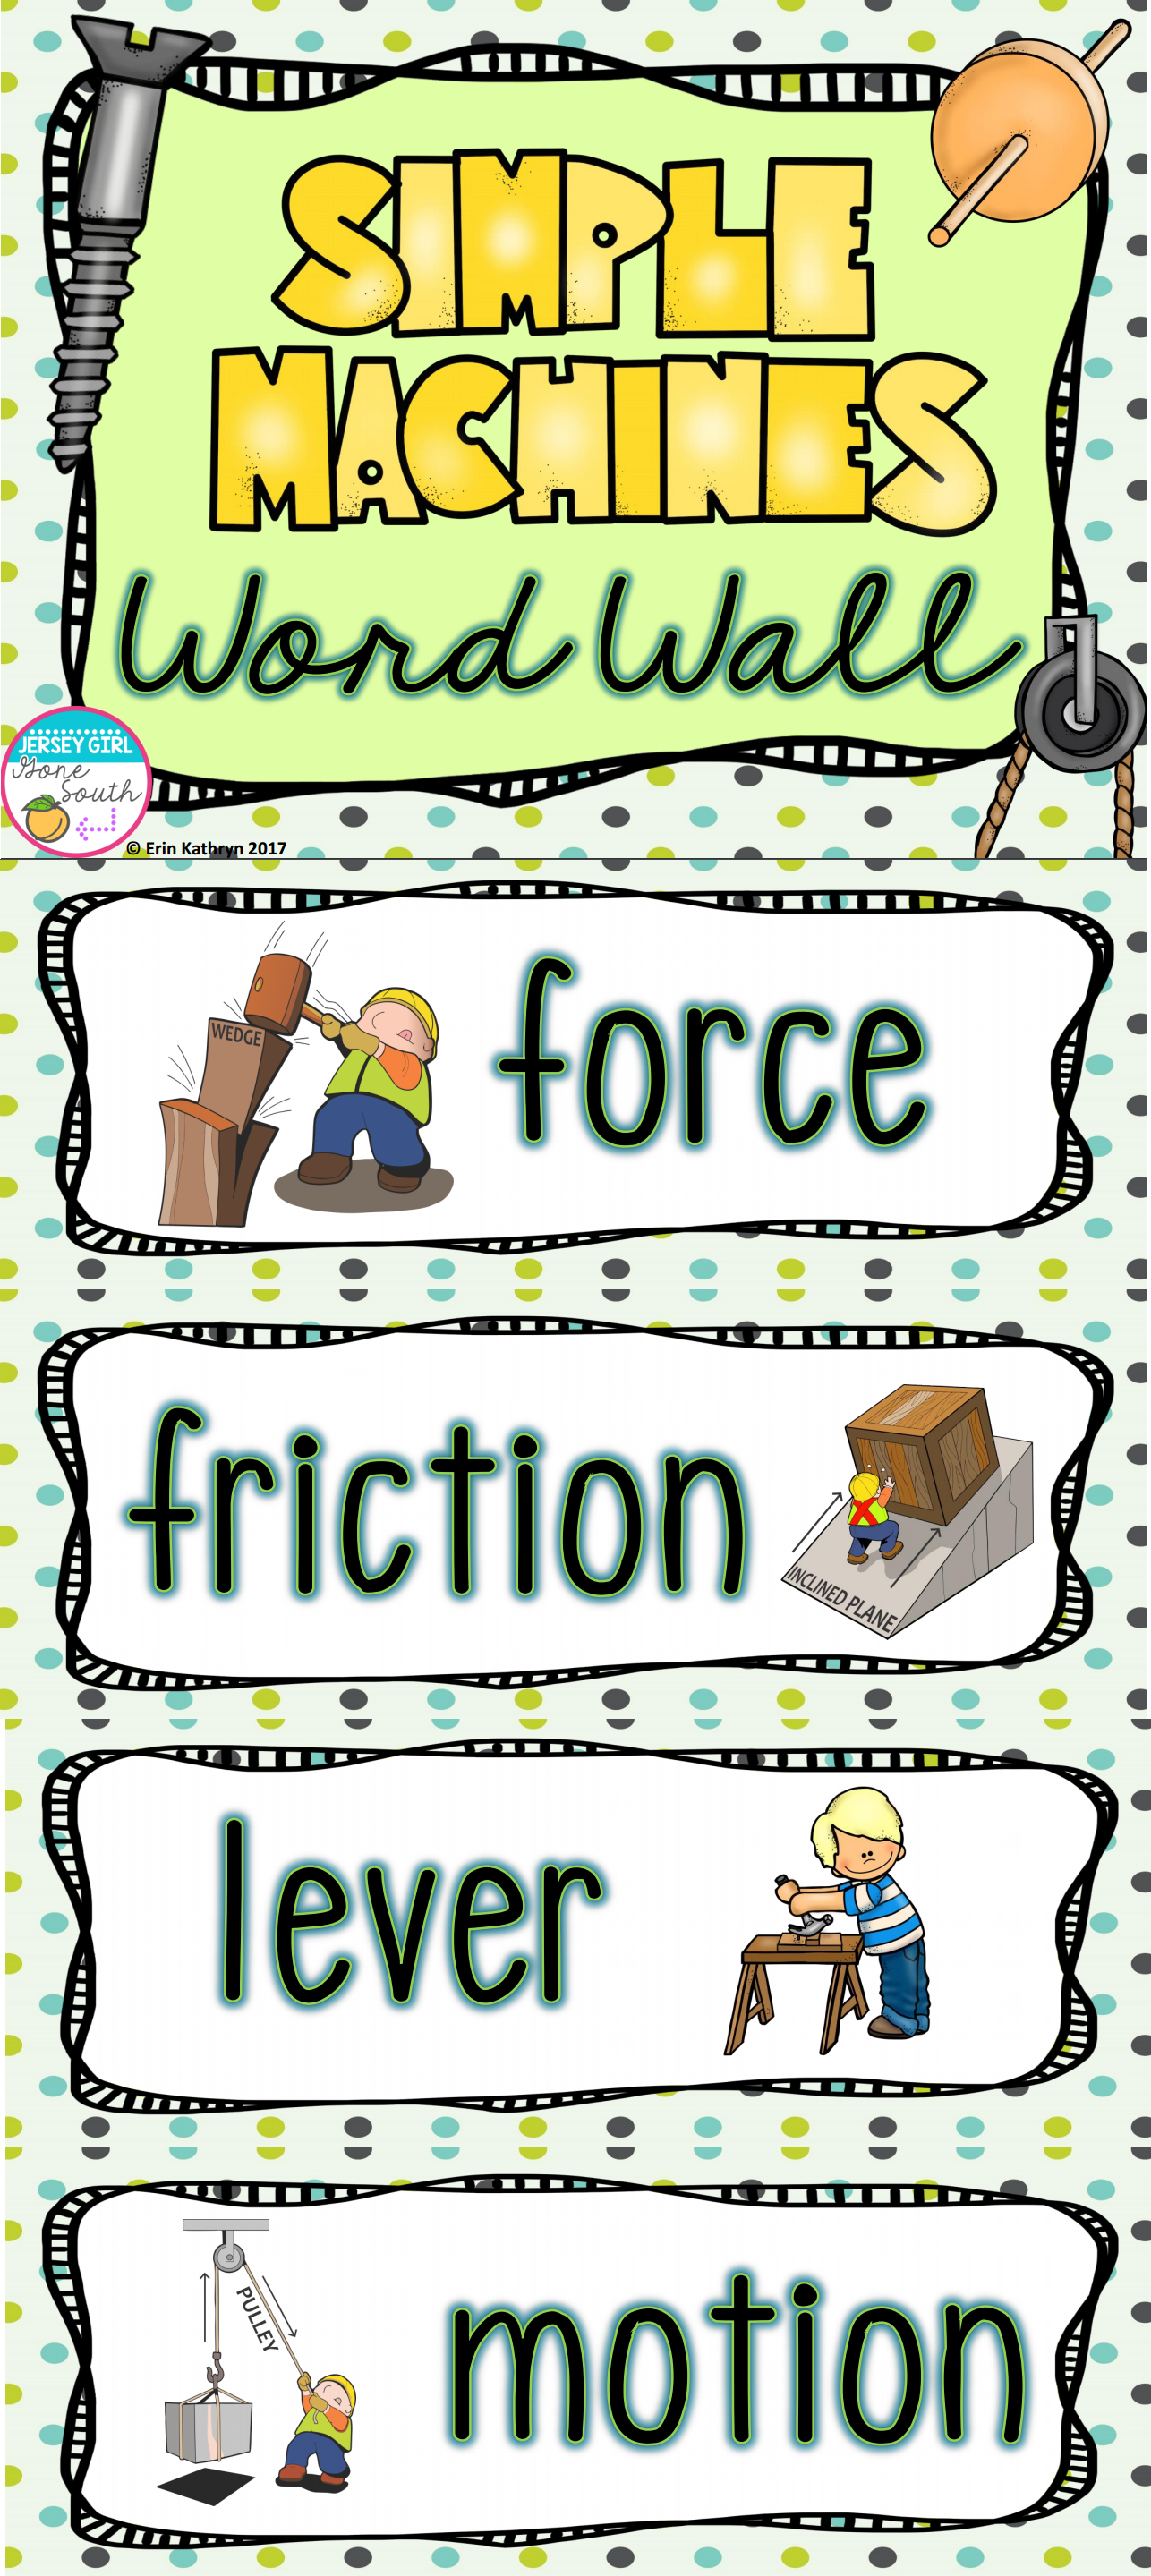 Simple Machines Vocabulary Word Wall With Images